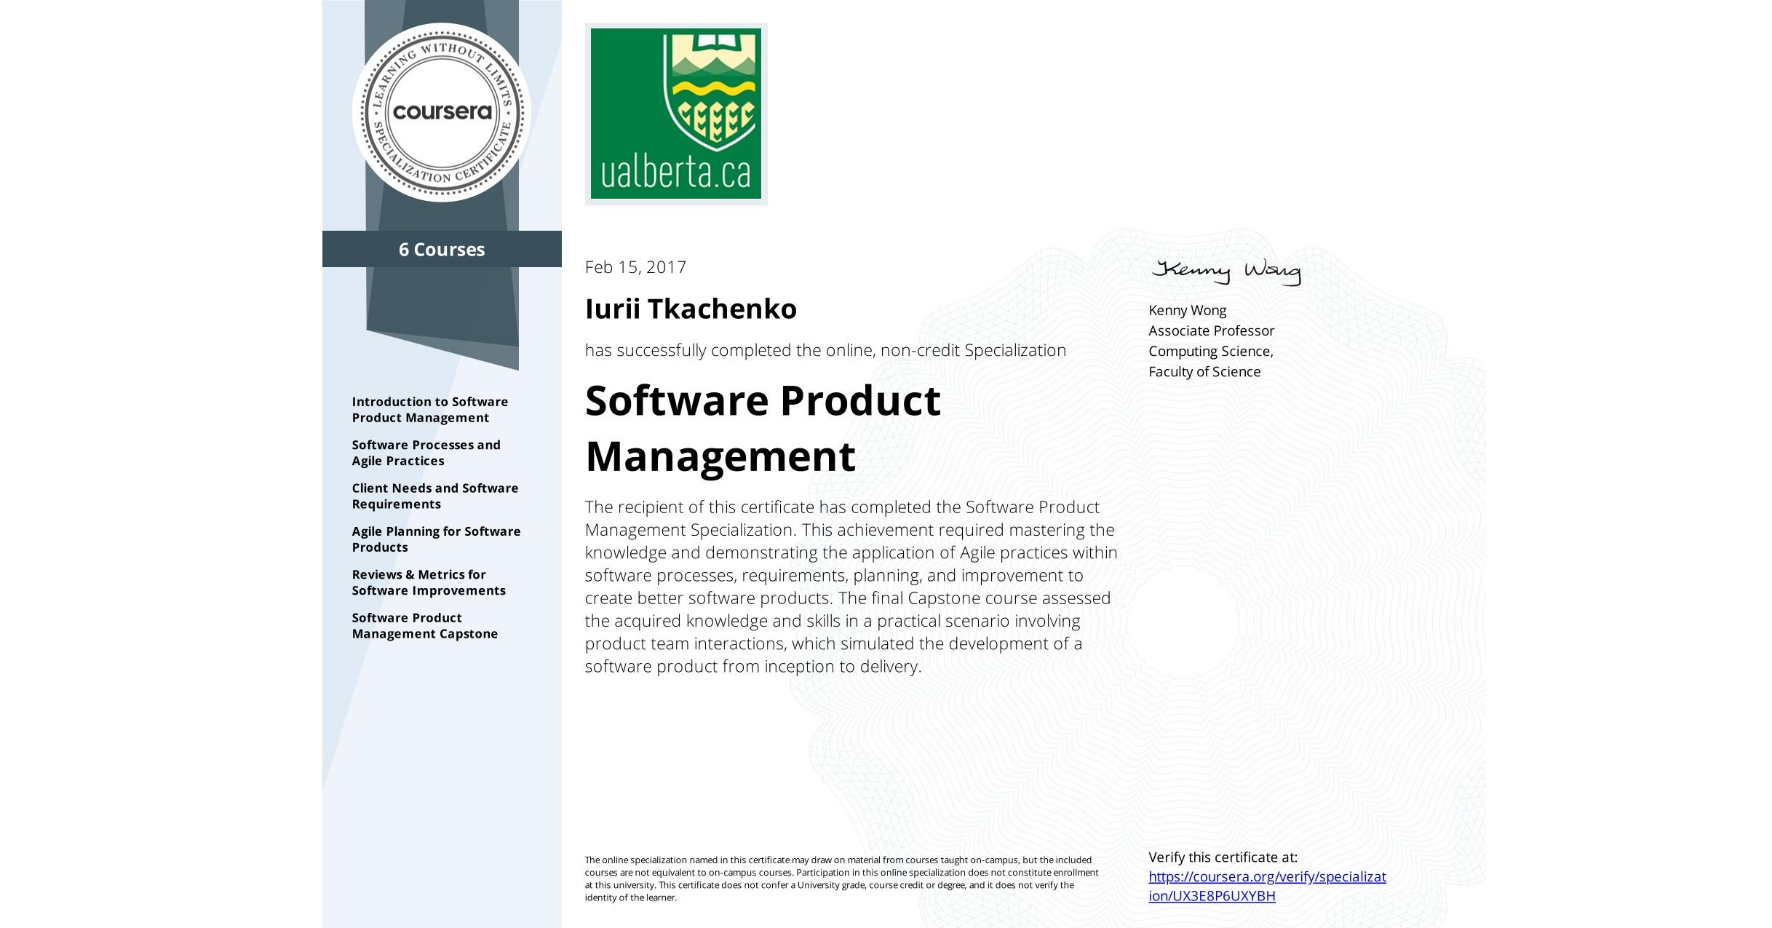 View certificate for Iurii Tkachenko, Software Product Management, offered through Coursera. The recipient of this certificate has completed the Software Product Management Specialization. This achievement required mastering the knowledge and demonstrating the application of Agile practices within software processes, requirements, planning, and improvement to create better software products. The final Capstone course assessed the acquired knowledge and skills in a practical scenario involving product team interactions, which simulated the development of a software product from inception to delivery.